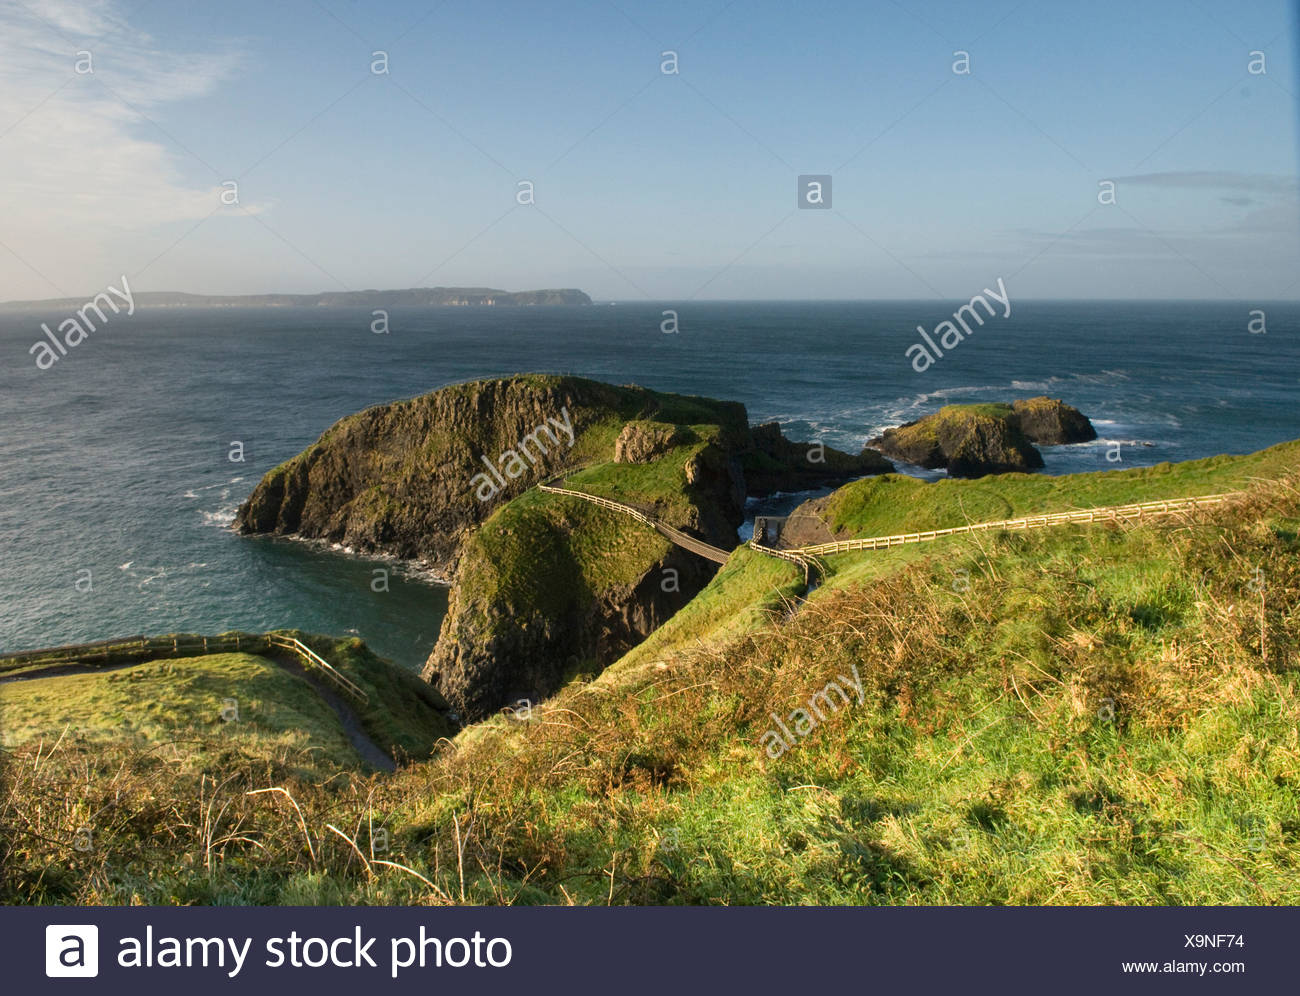 Northern Ireland, Causeway Coast, Carrick-A-Rede rope bridge - Stock Image